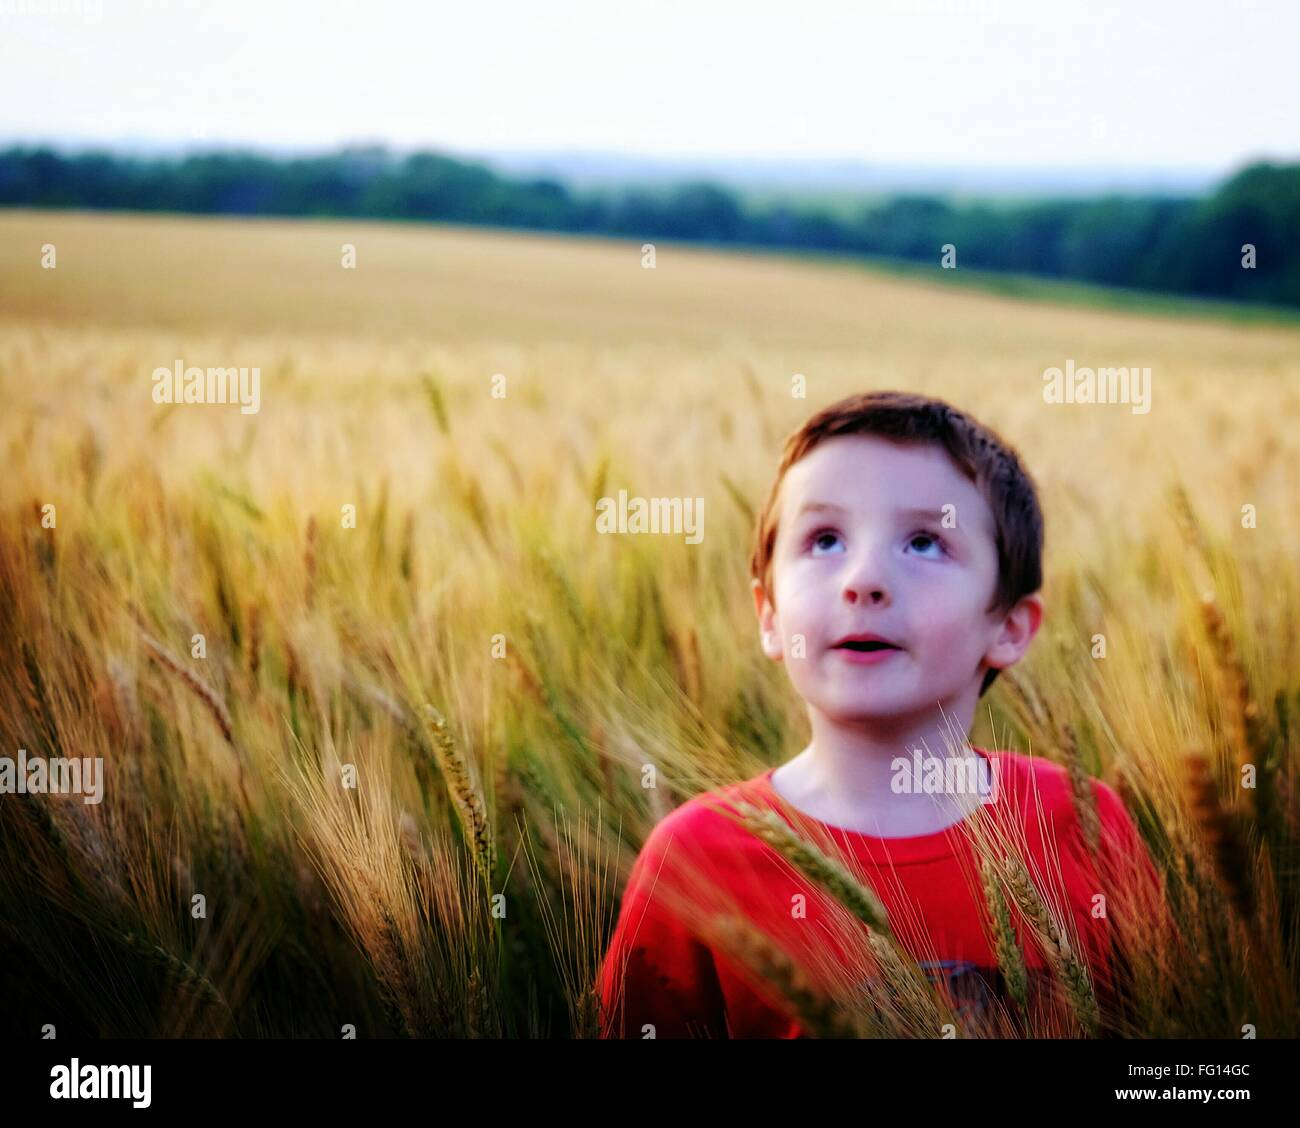 Boy Standing In Wheat Field And Looking Up - Stock Image